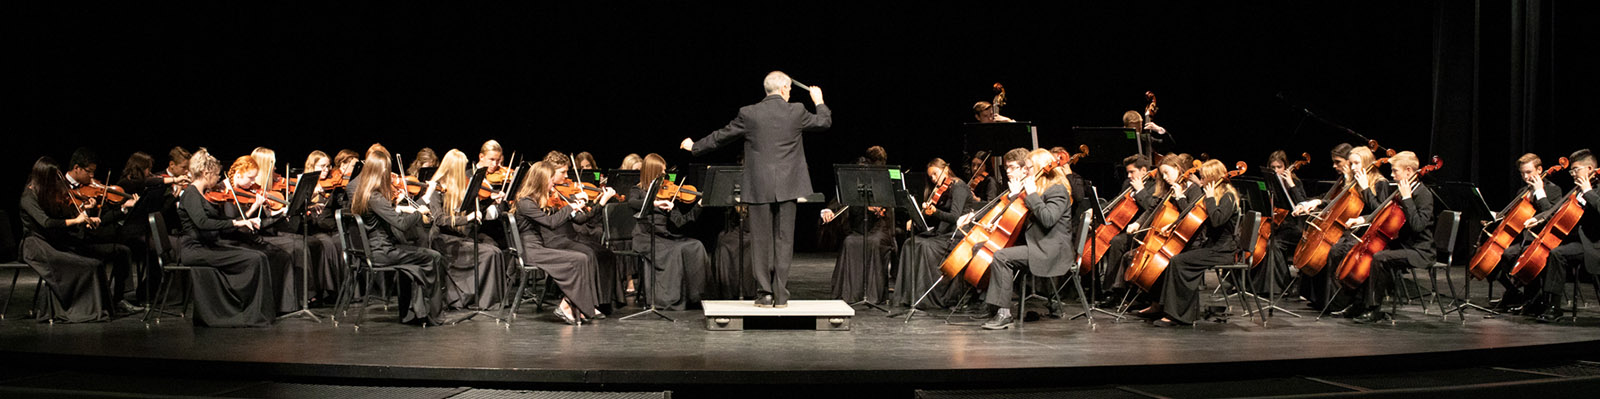 Orchestra playing on stage